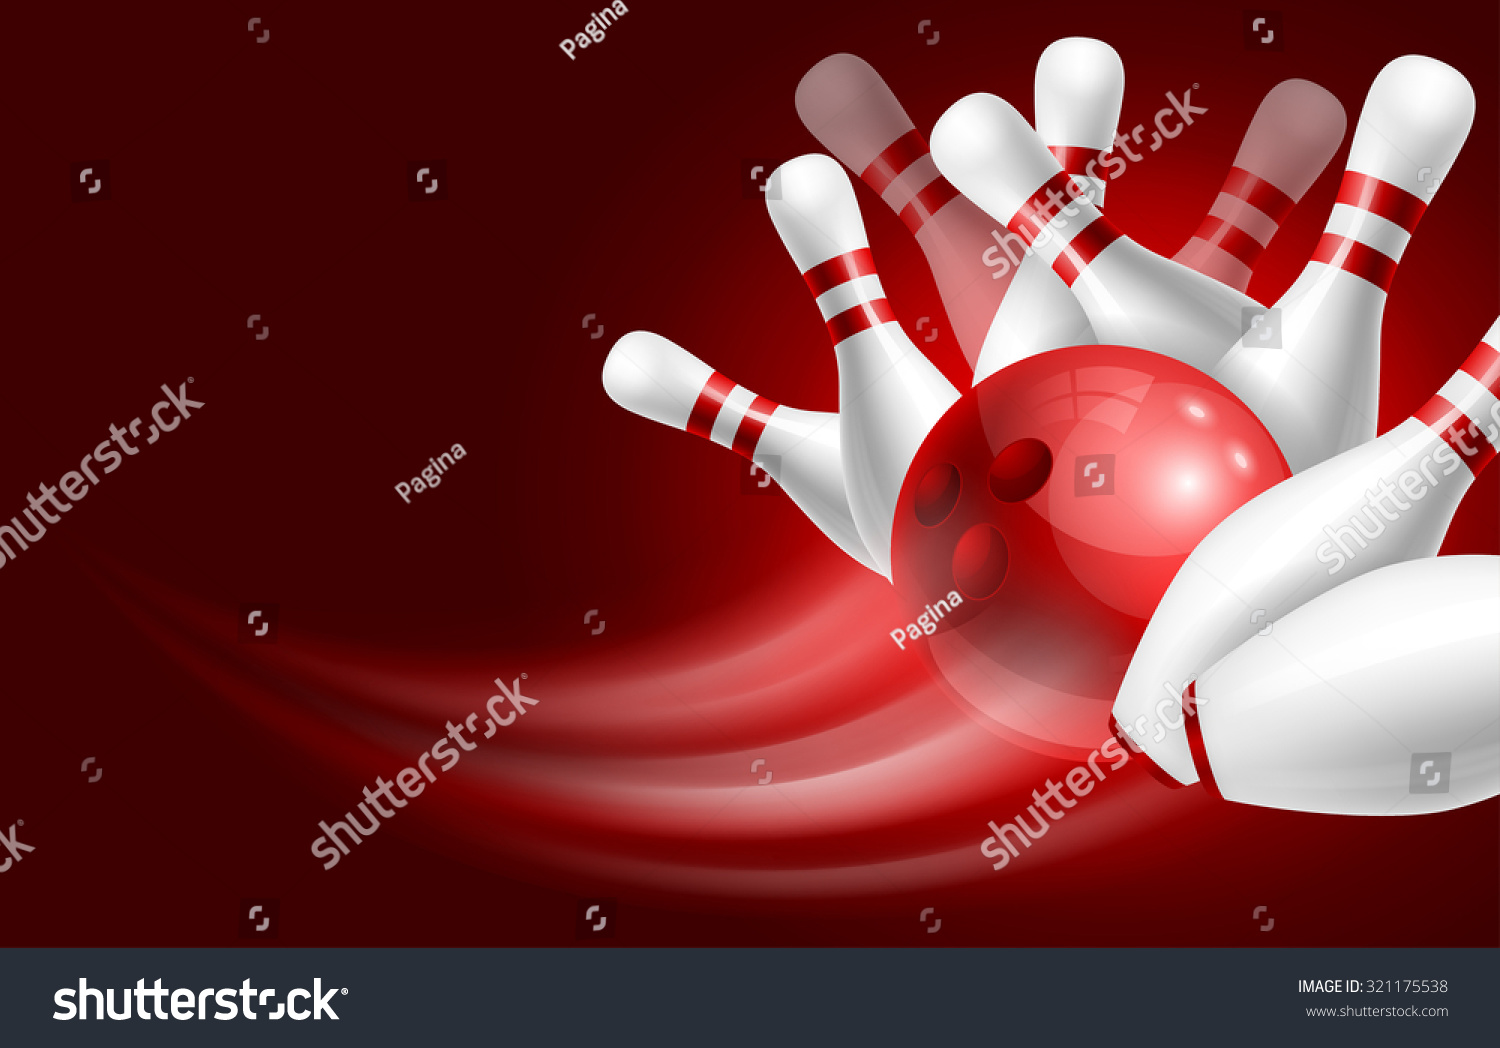 red ball theme